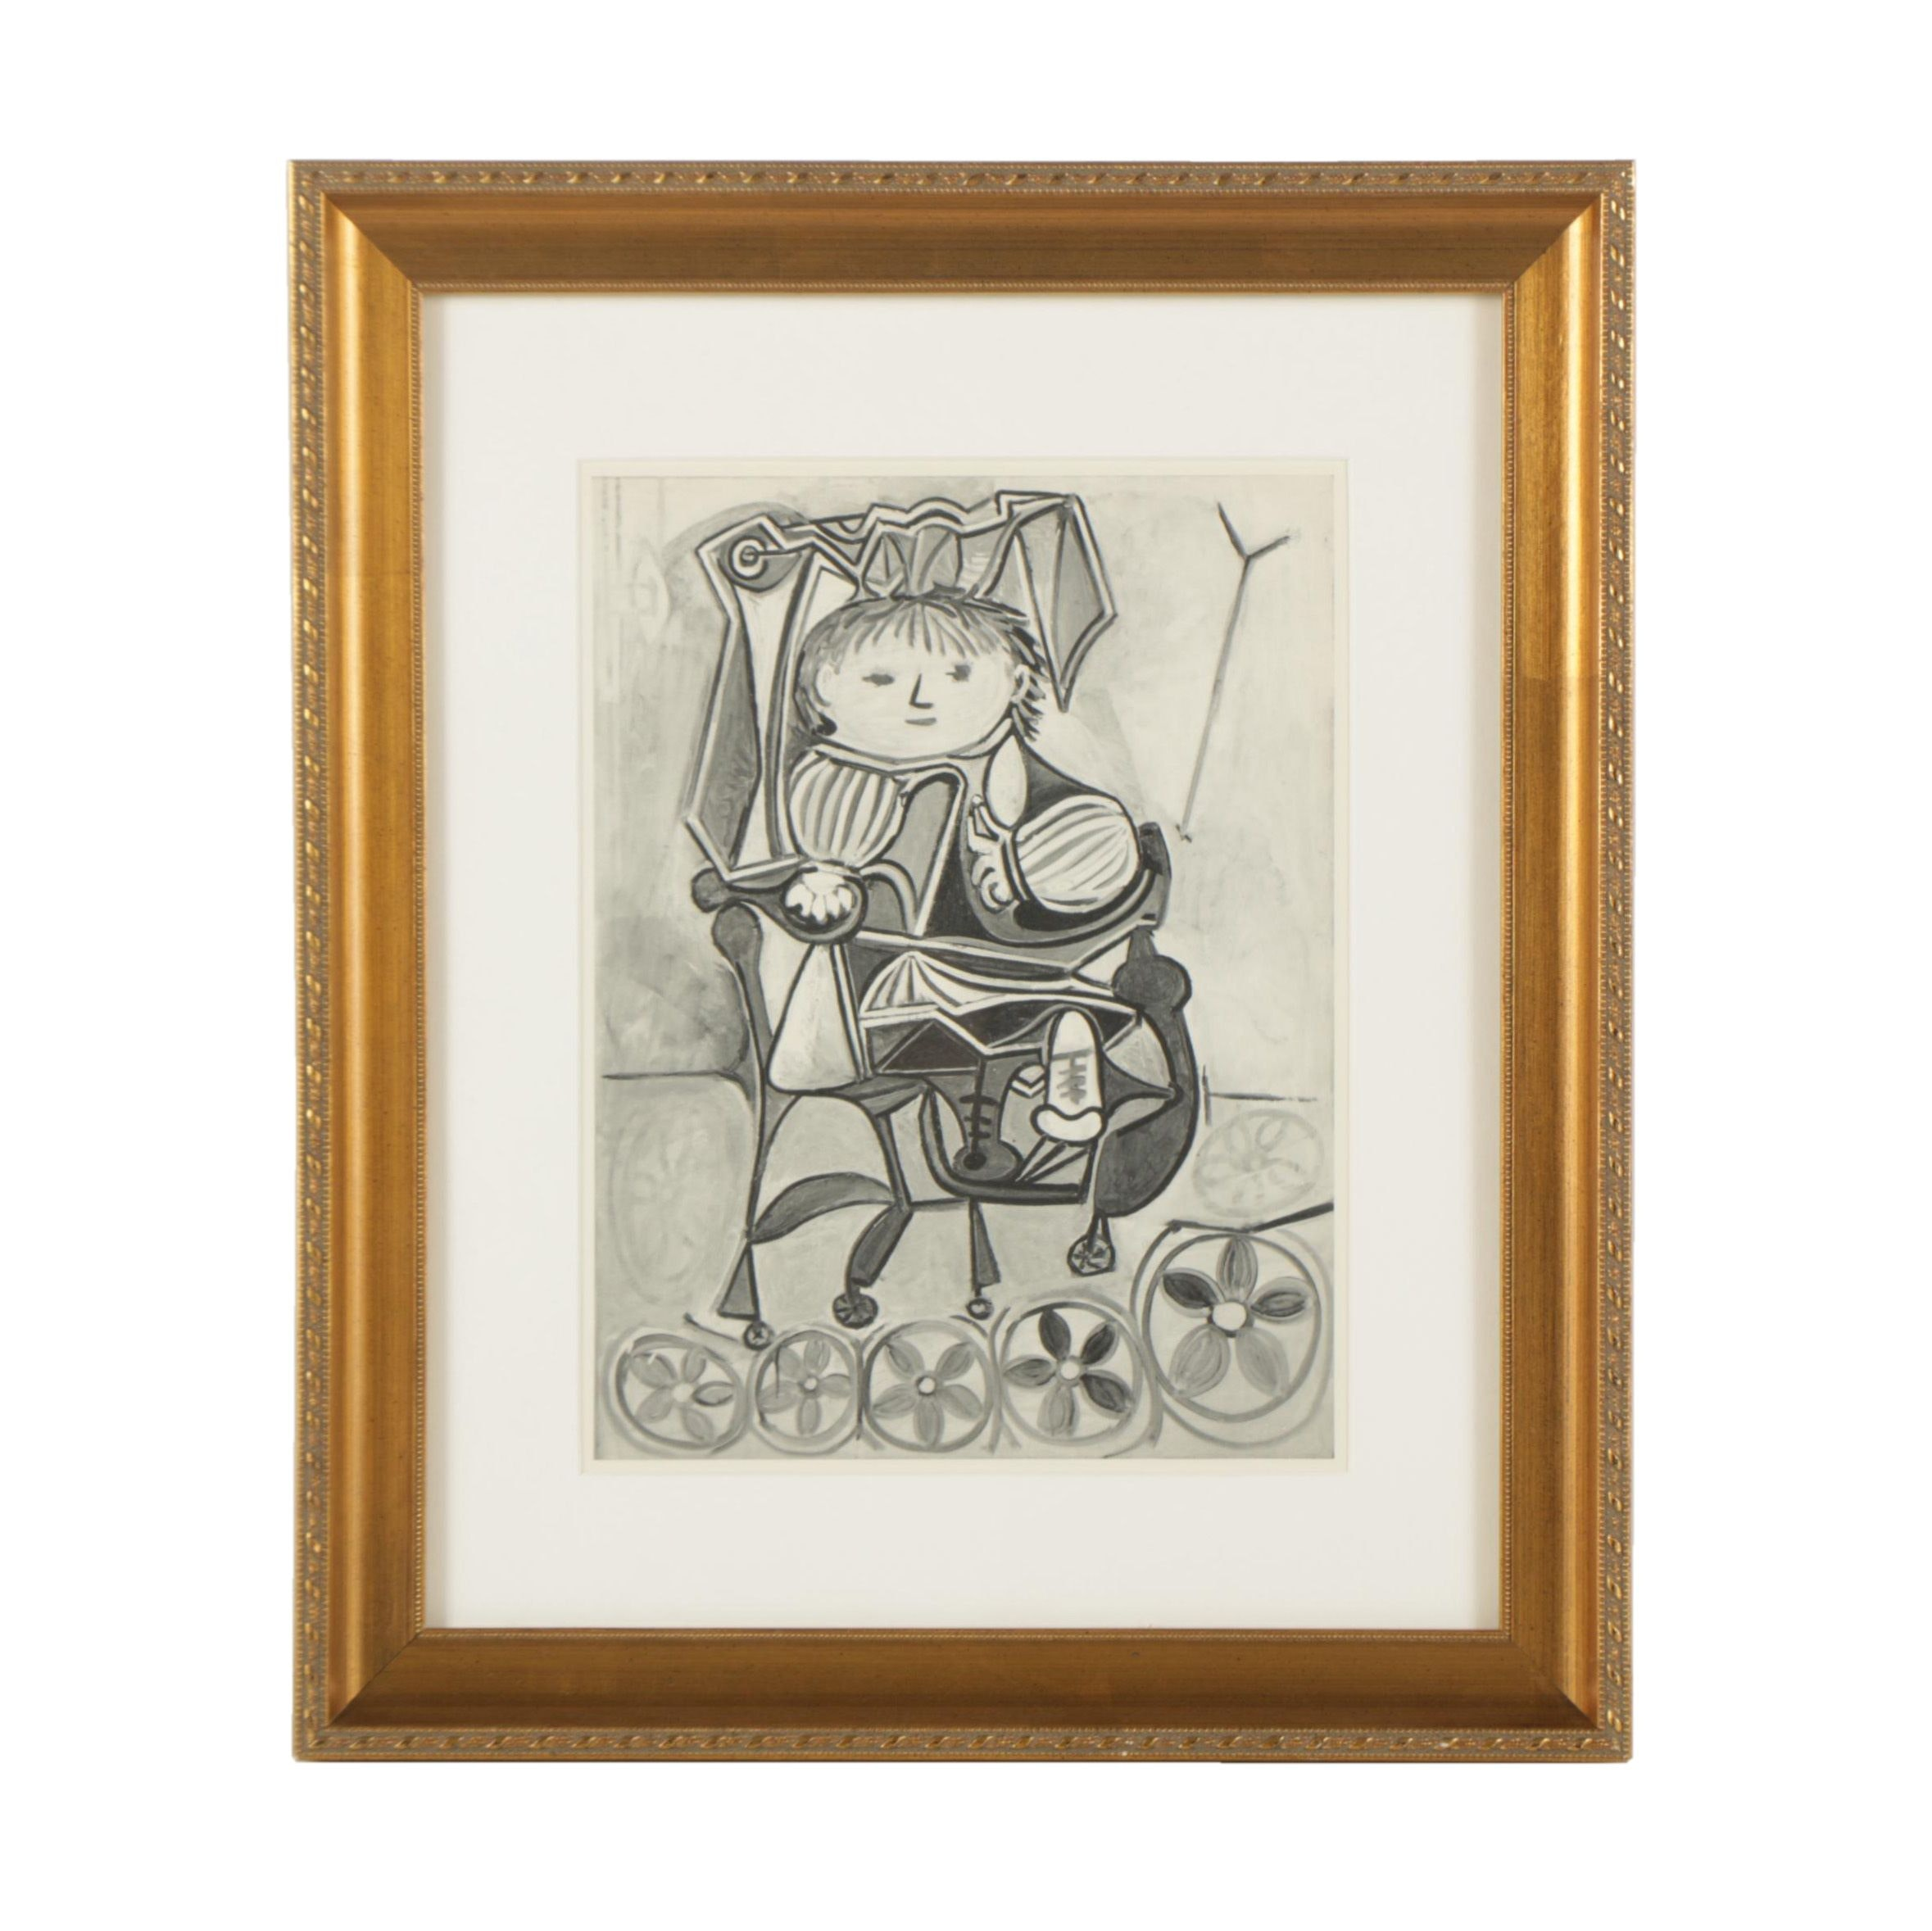 Lithograph Print of Black and White Cubist Style Portrait